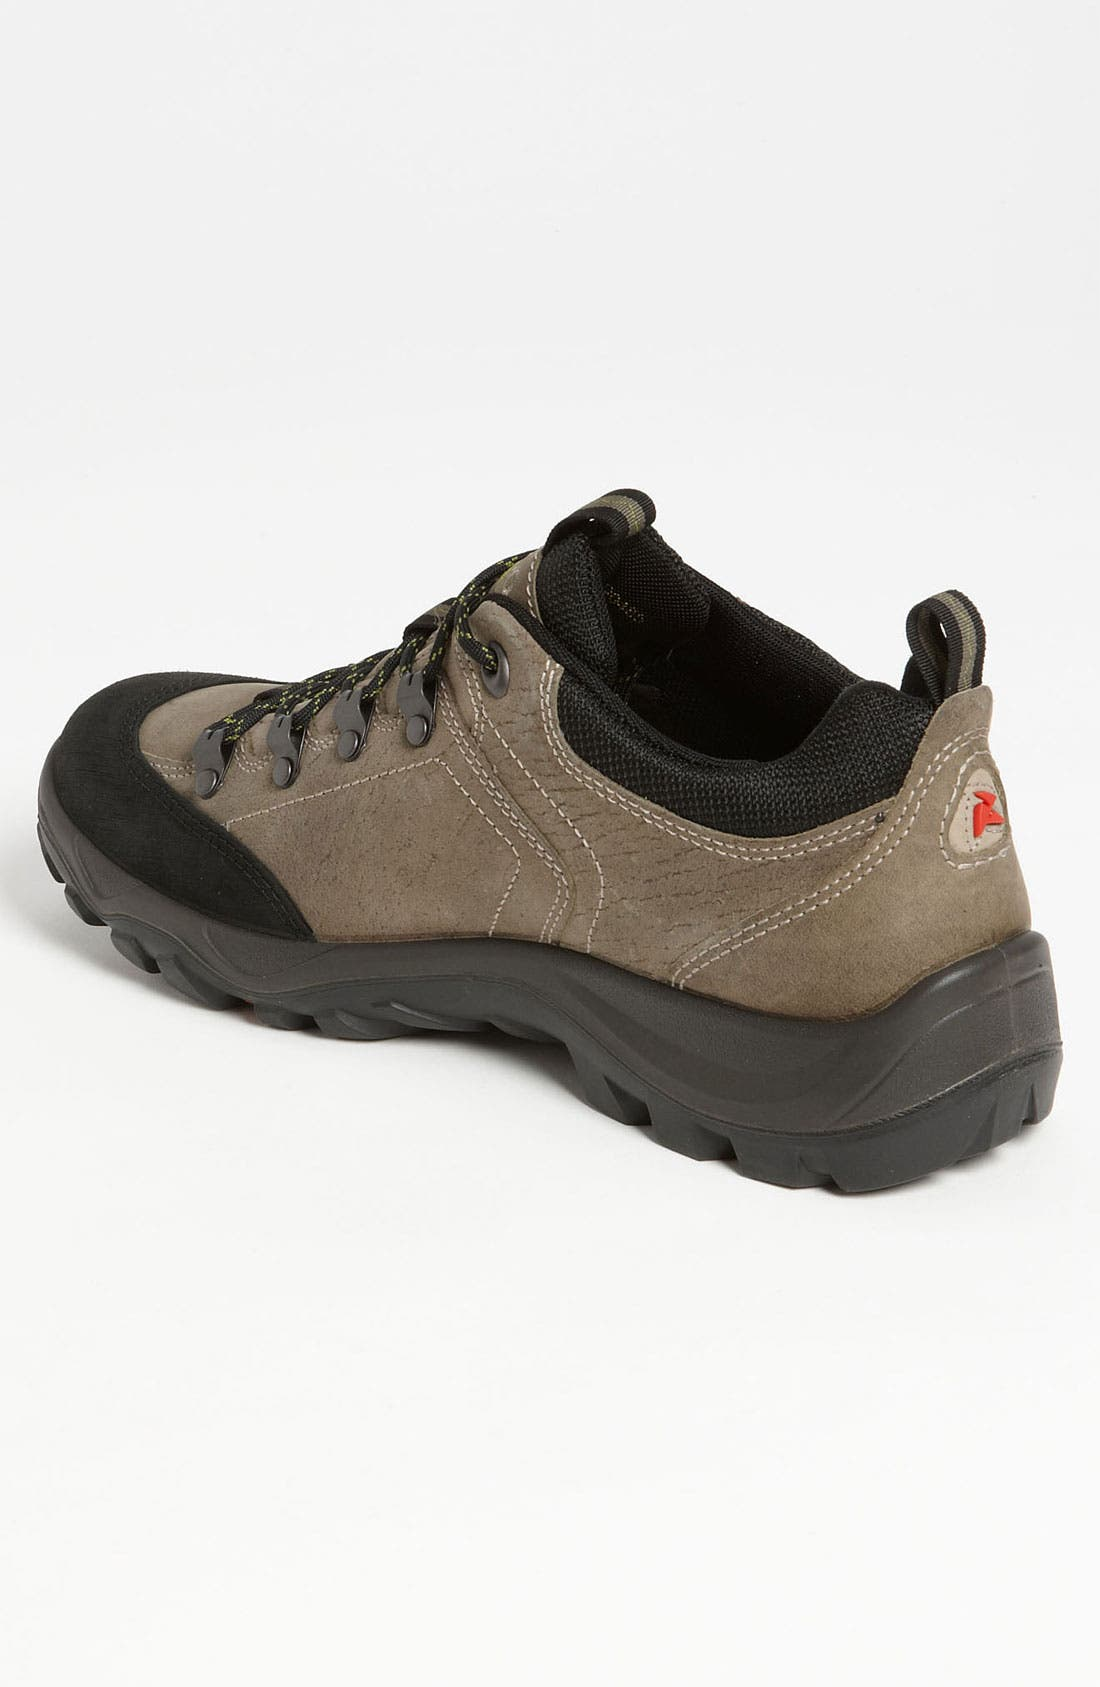 Alternate Image 2  - ECCO 'Sayan Low II GTX' Hiking Shoe (Men)